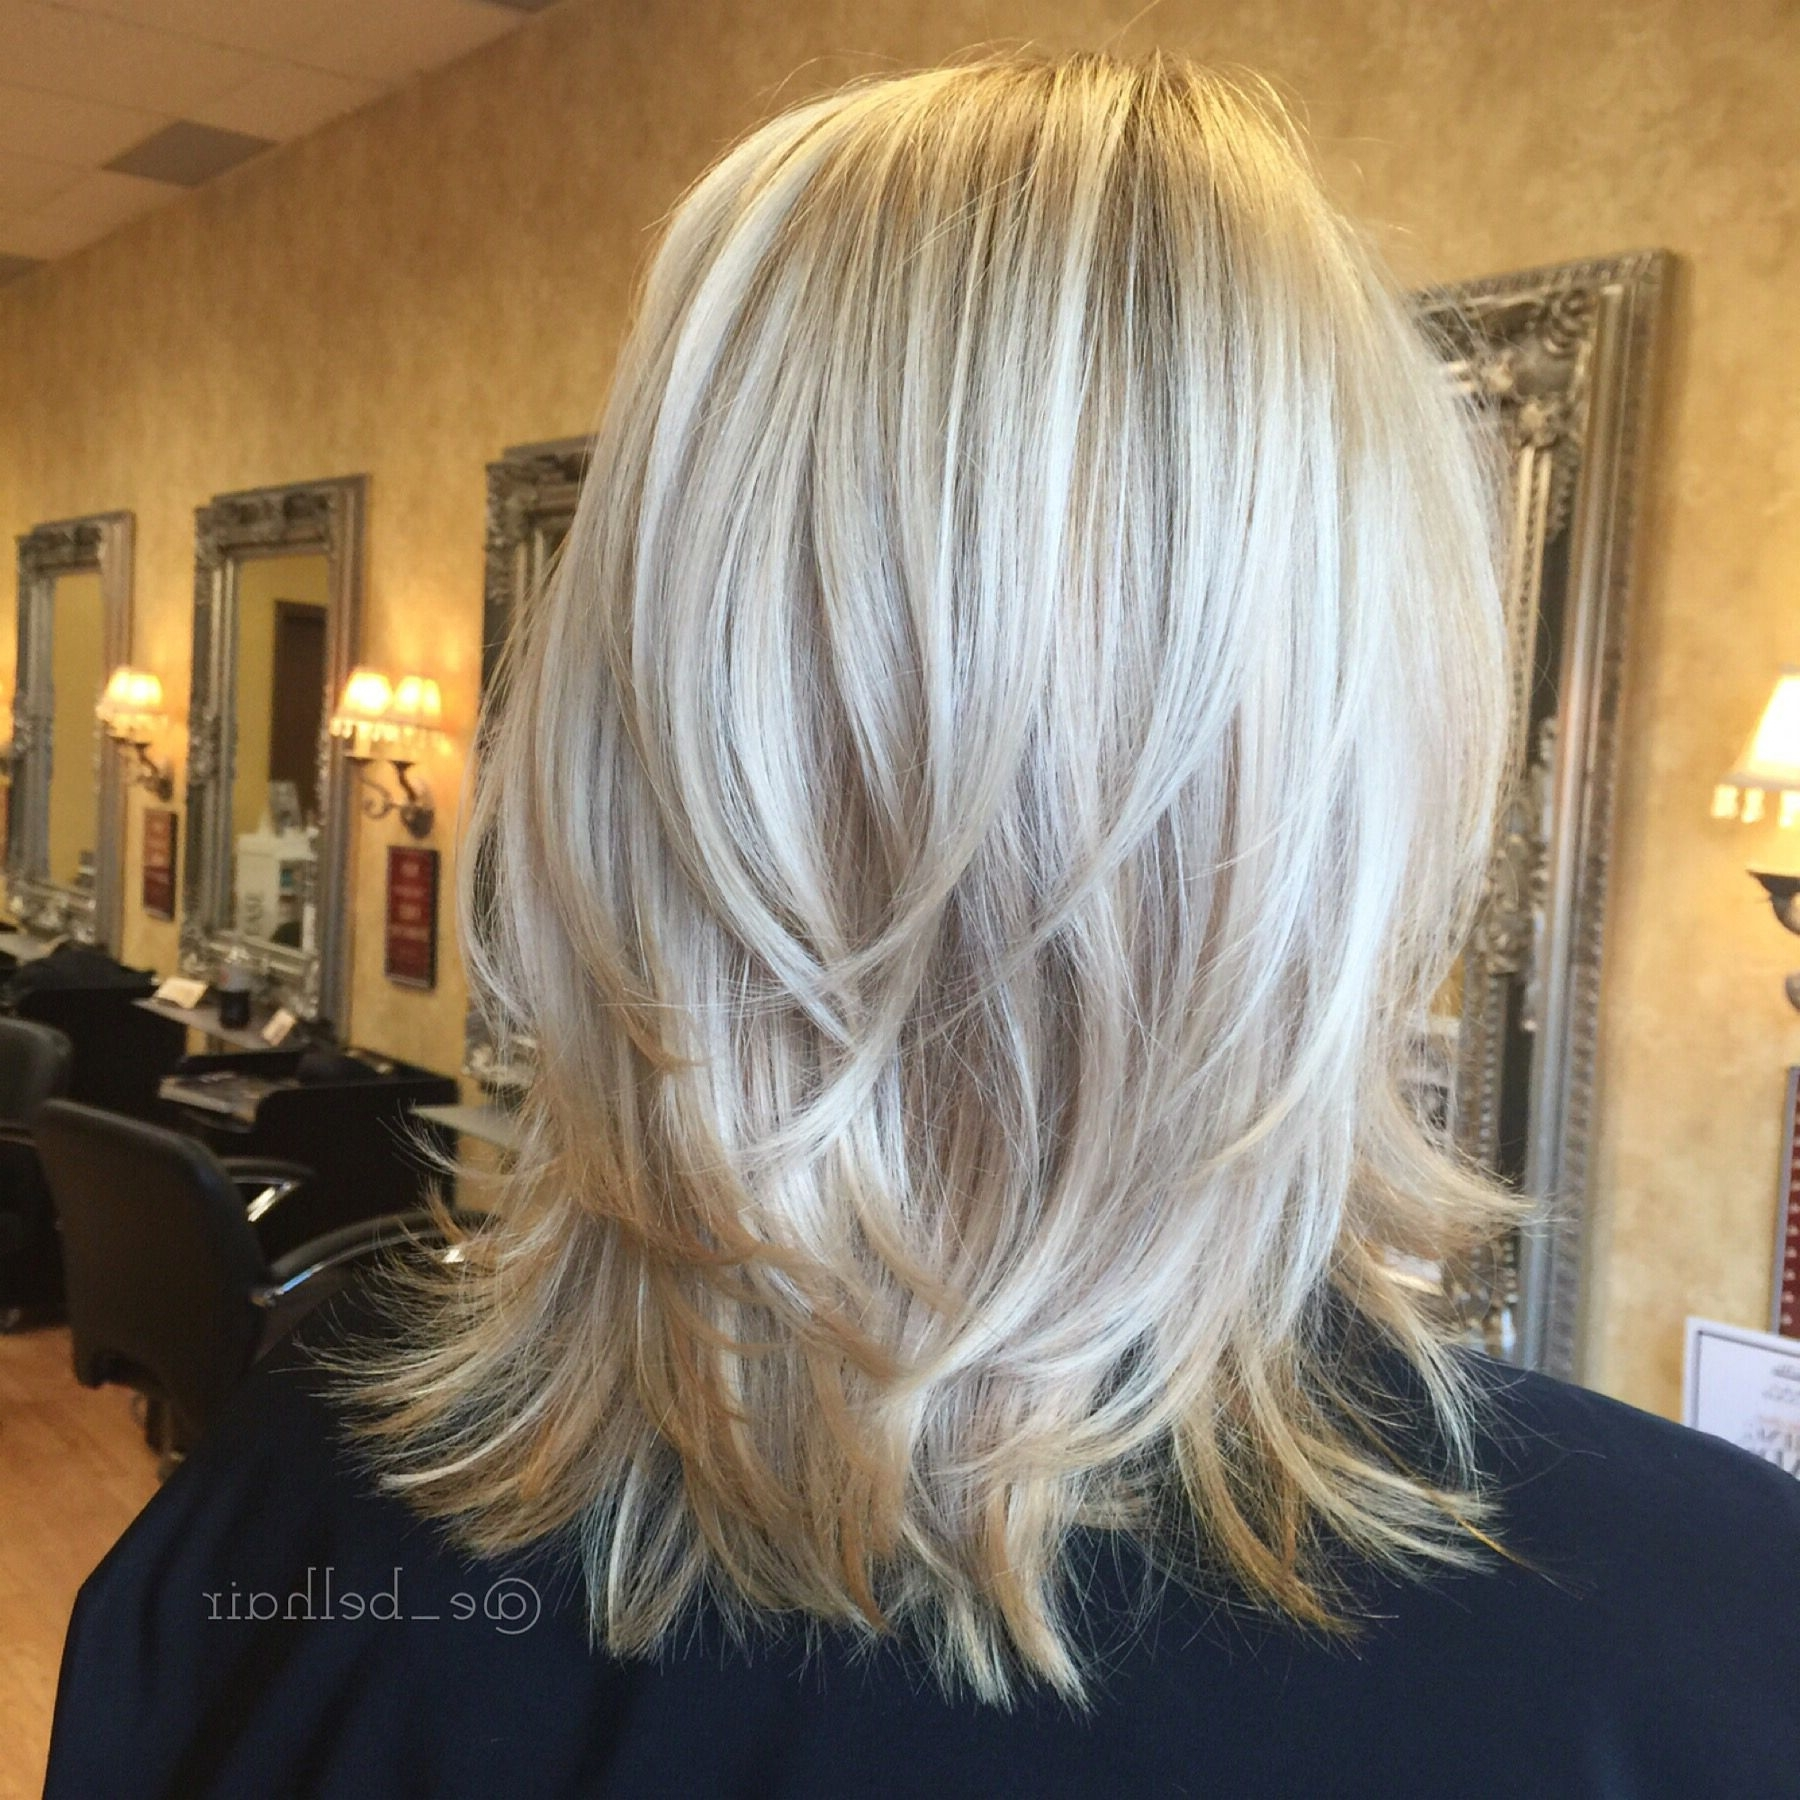 Famous Layered Bright And Beautiful Locks Blonde Hairstyles Throughout Shoulder Length Cut With Tousled Layers And Fresh Blonde Color (View 16 of 20)